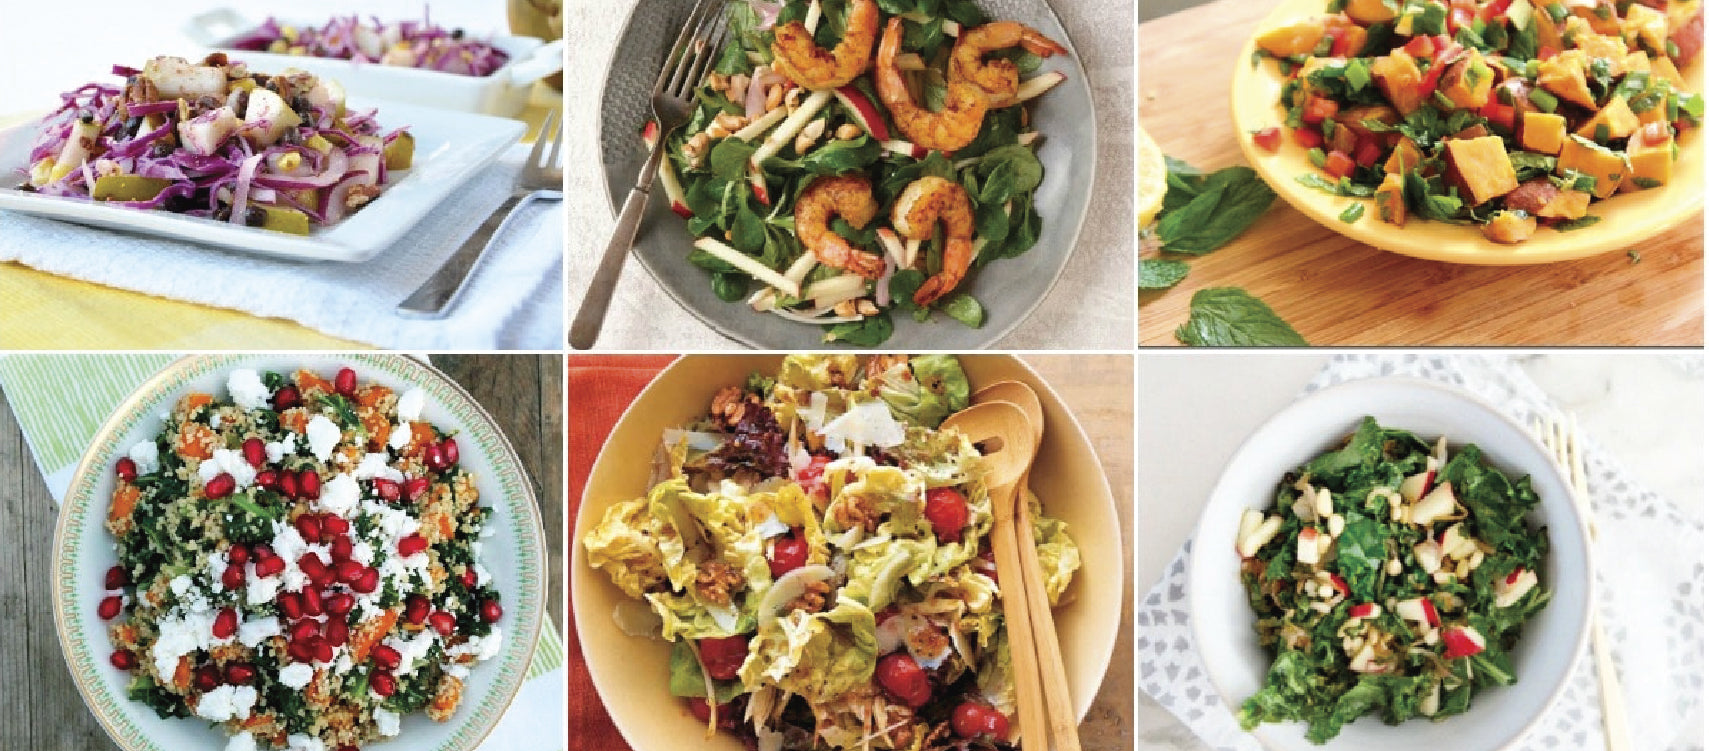 Looking for healthy recipes and food ideas online.